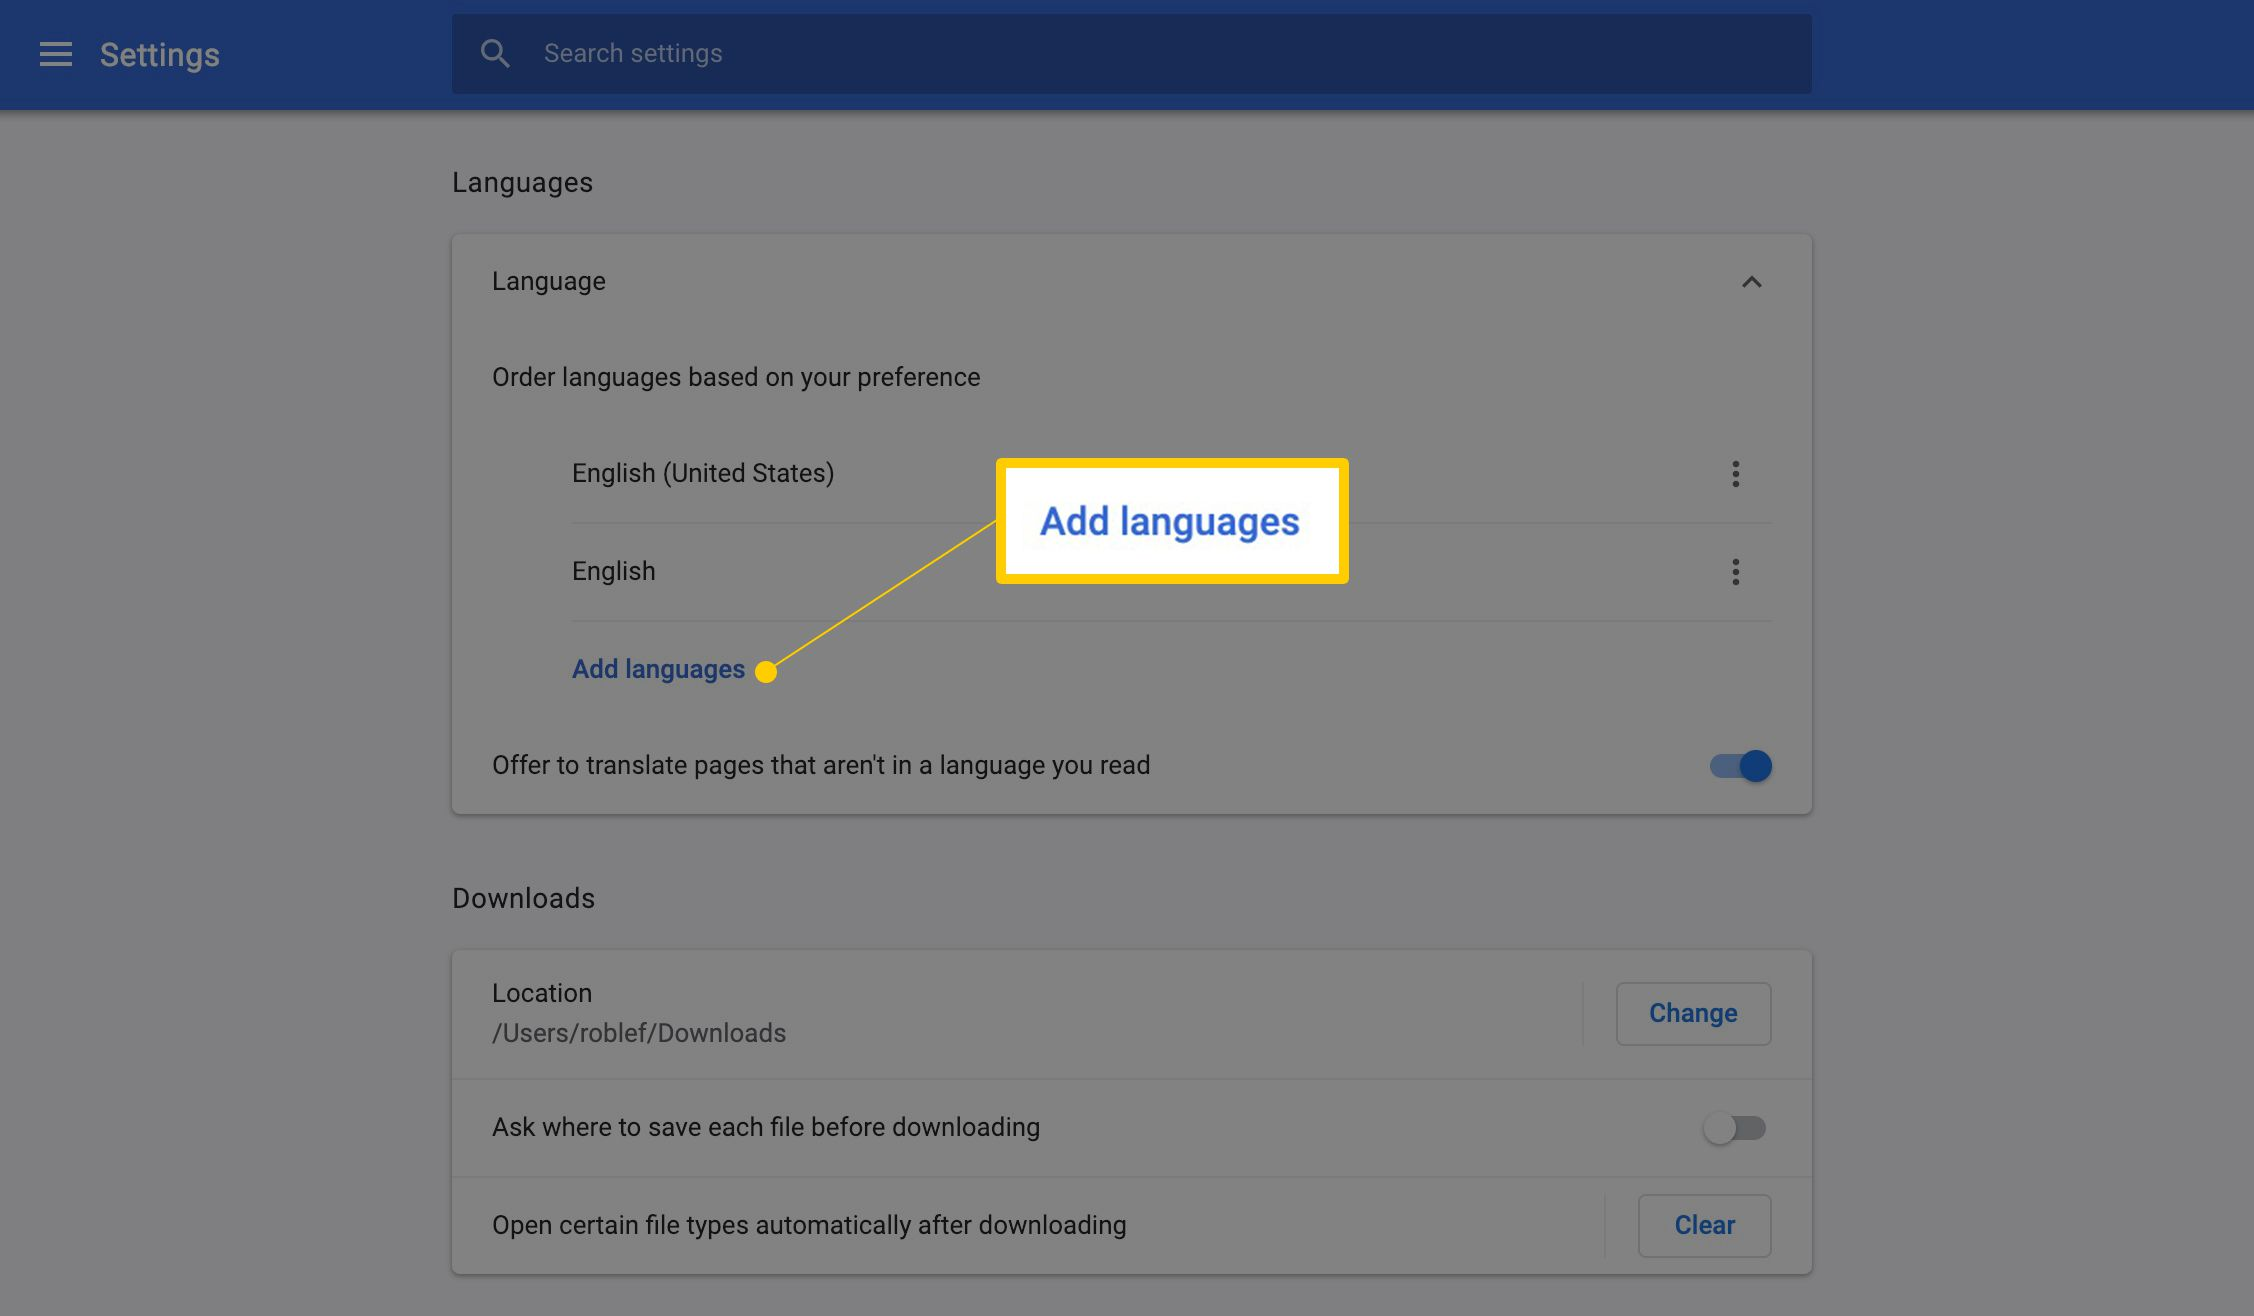 How to Change the Default Languages in Google Chrome